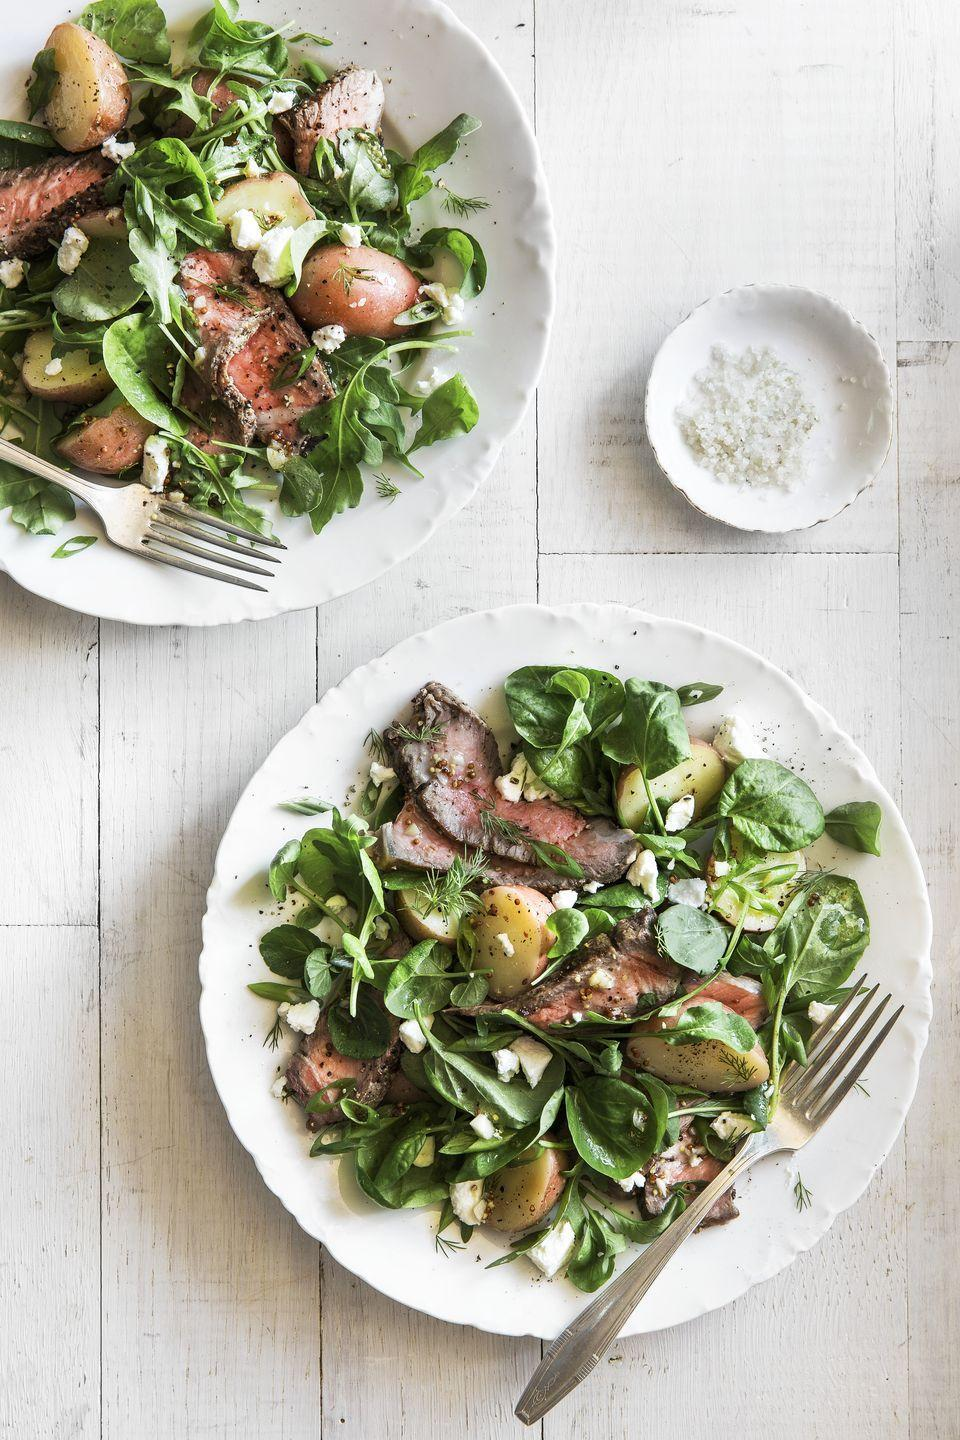 "<p>This steak-and-potato salad is a light and flavorful way to savor red meat.</p><p><a href=""https://www.countryliving.com/food-drinks/recipes/a35066/steak-and-potato-salad-1/"" rel=""nofollow noopener"" target=""_blank"" data-ylk=""slk:Get the recipe."" class=""link rapid-noclick-resp""><strong>Get the recipe.</strong></a></p>"